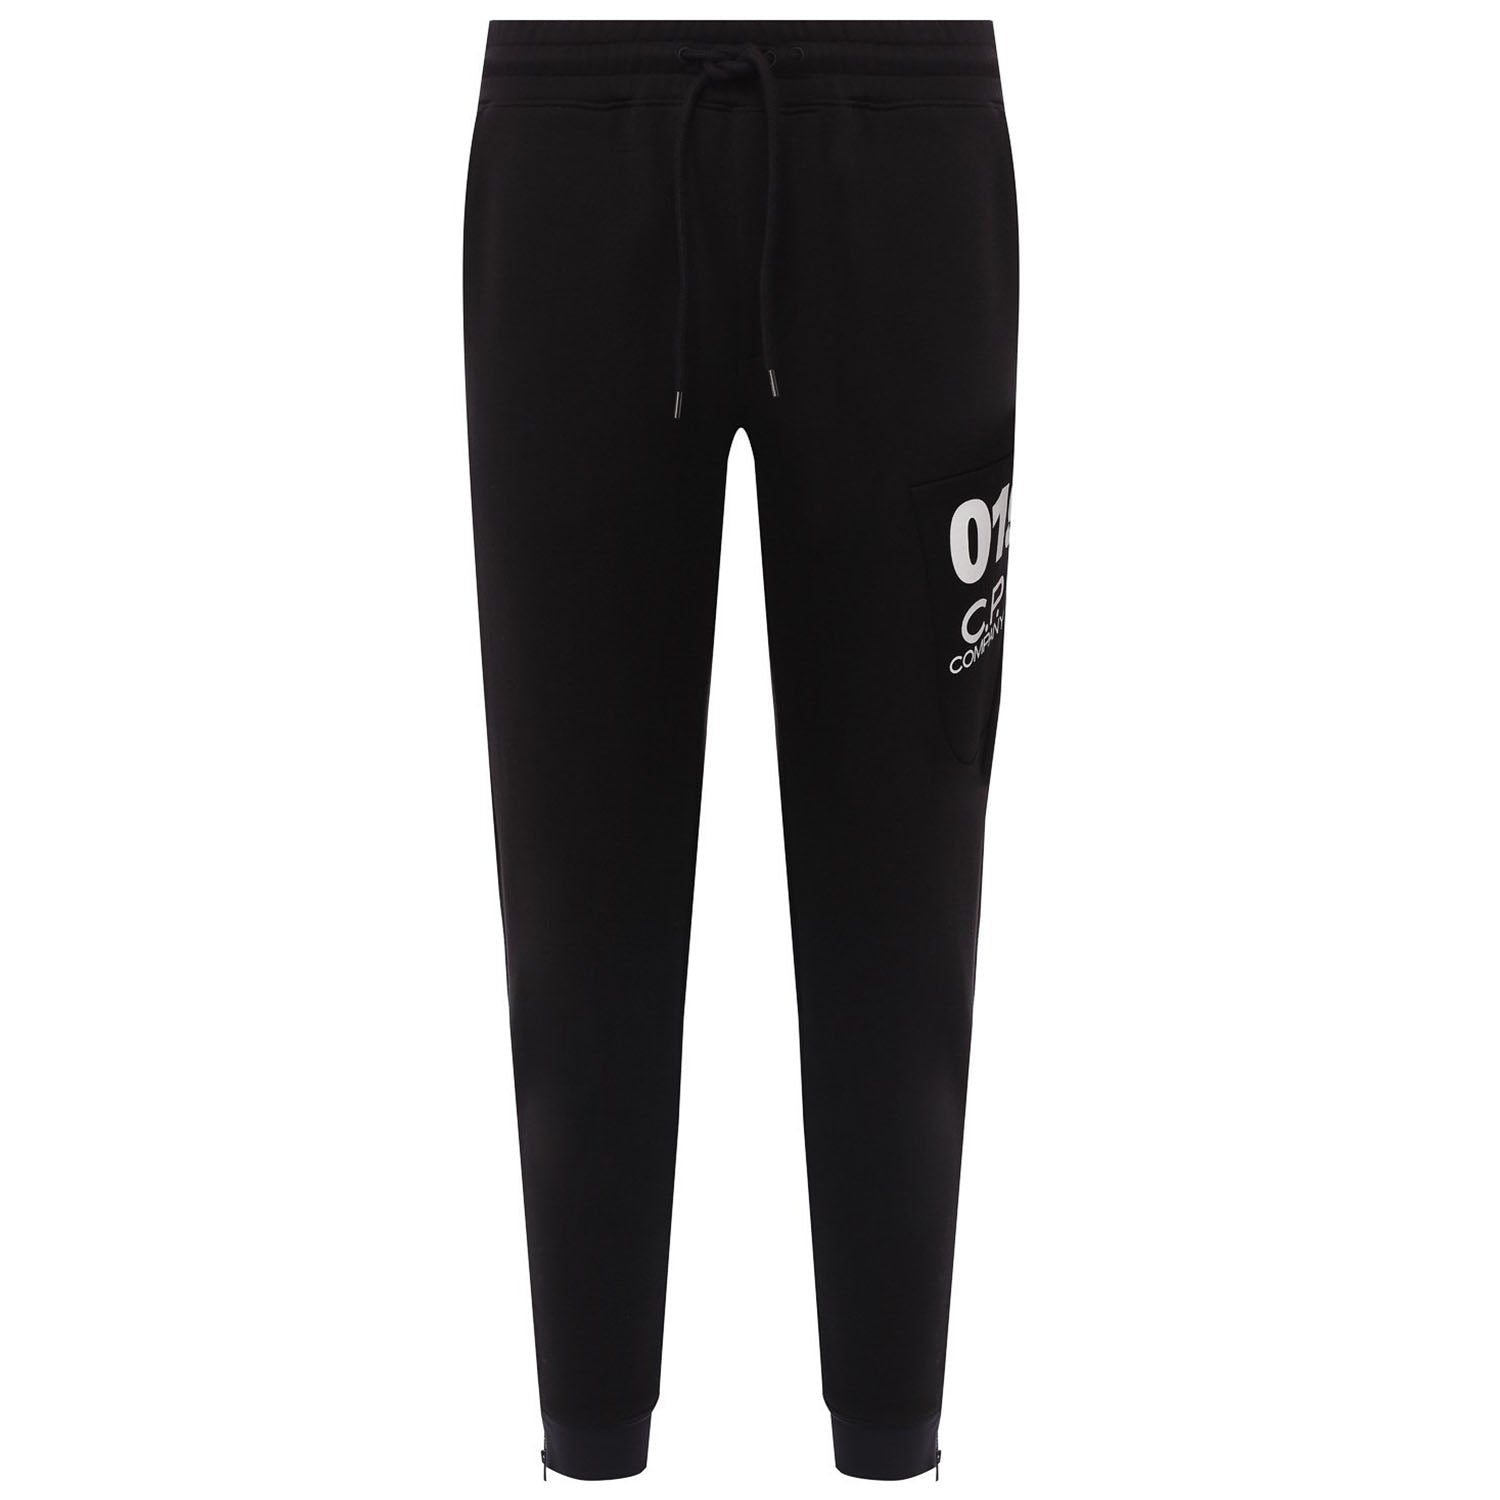 CP Company Diagonal Fleece Sweatpants